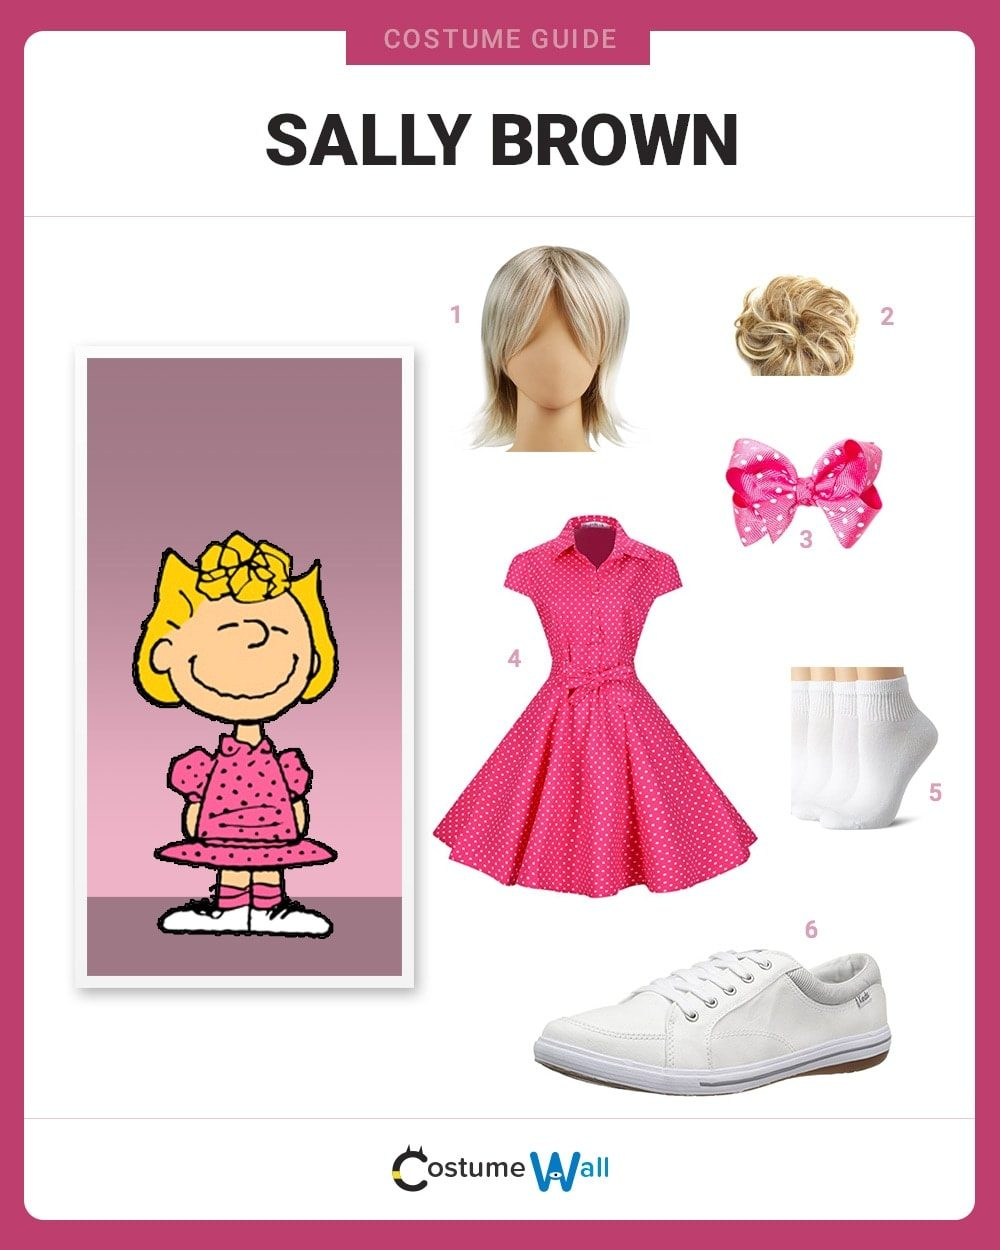 Sally Brown Costume Guide